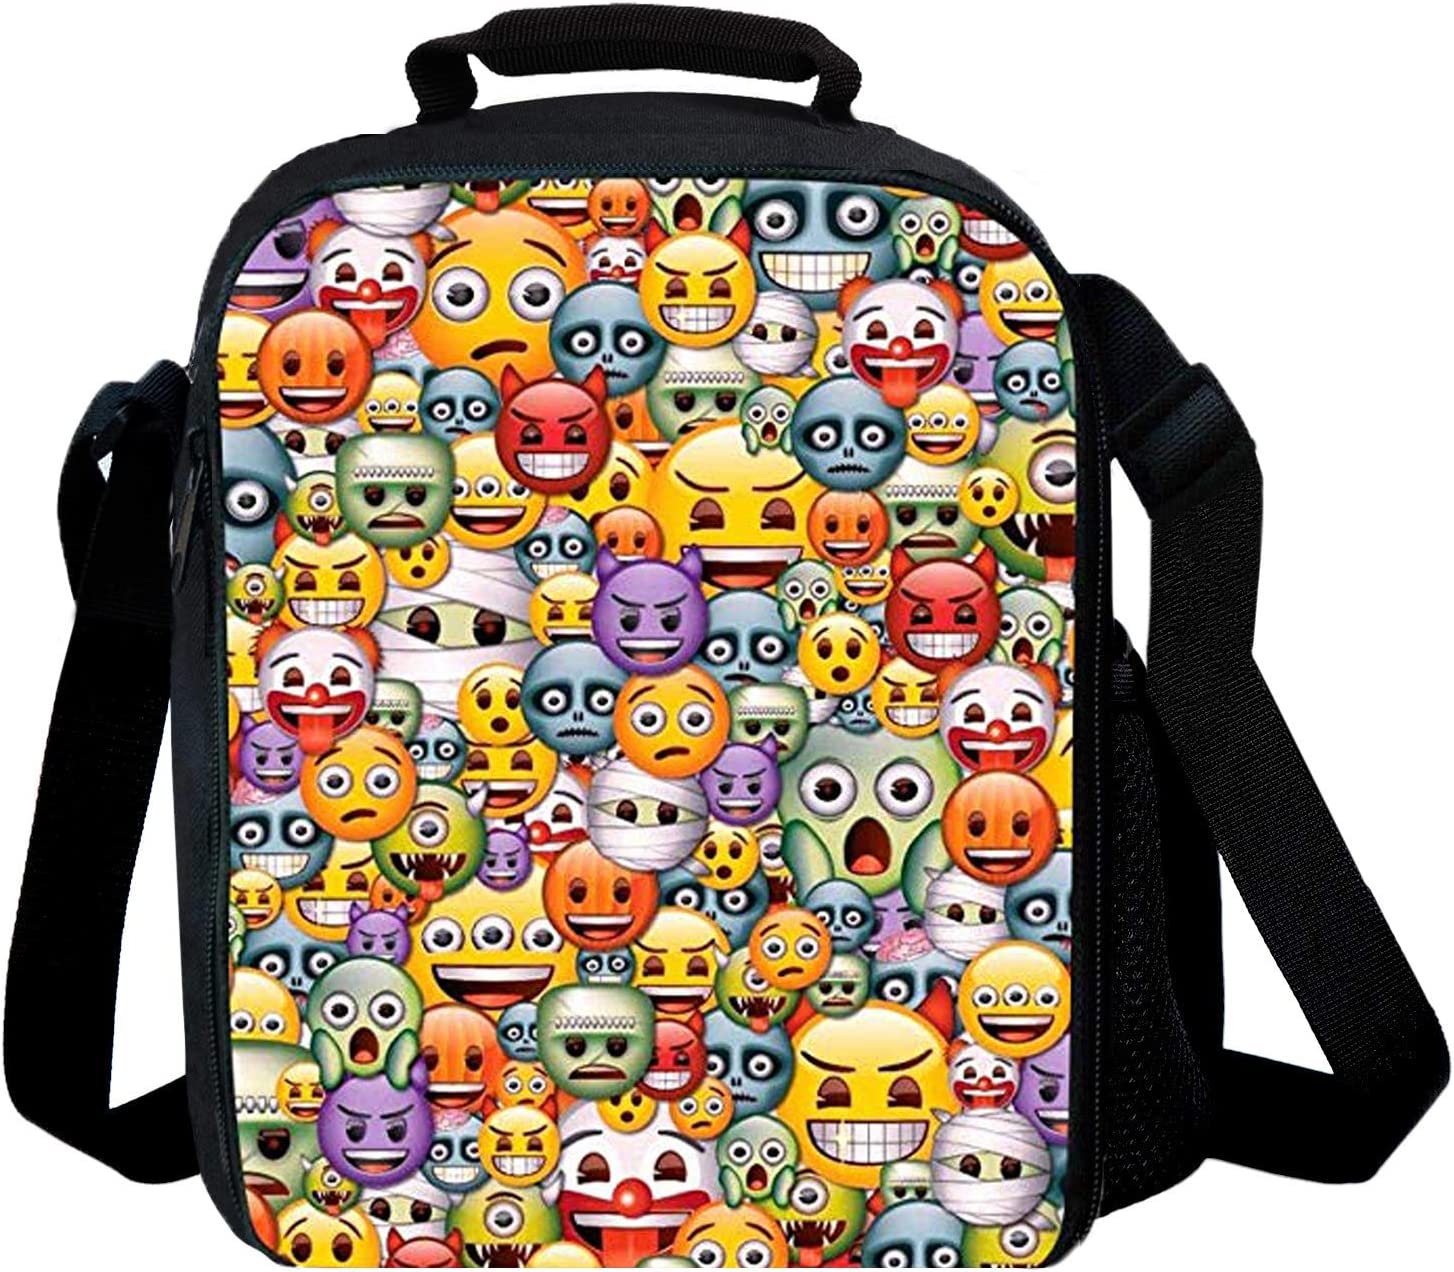 7-Mi Holder Insulated Cooler Reusable Ice Packs for Lunch Boxes Lunch Tote Food Storage Bag (Emoji)